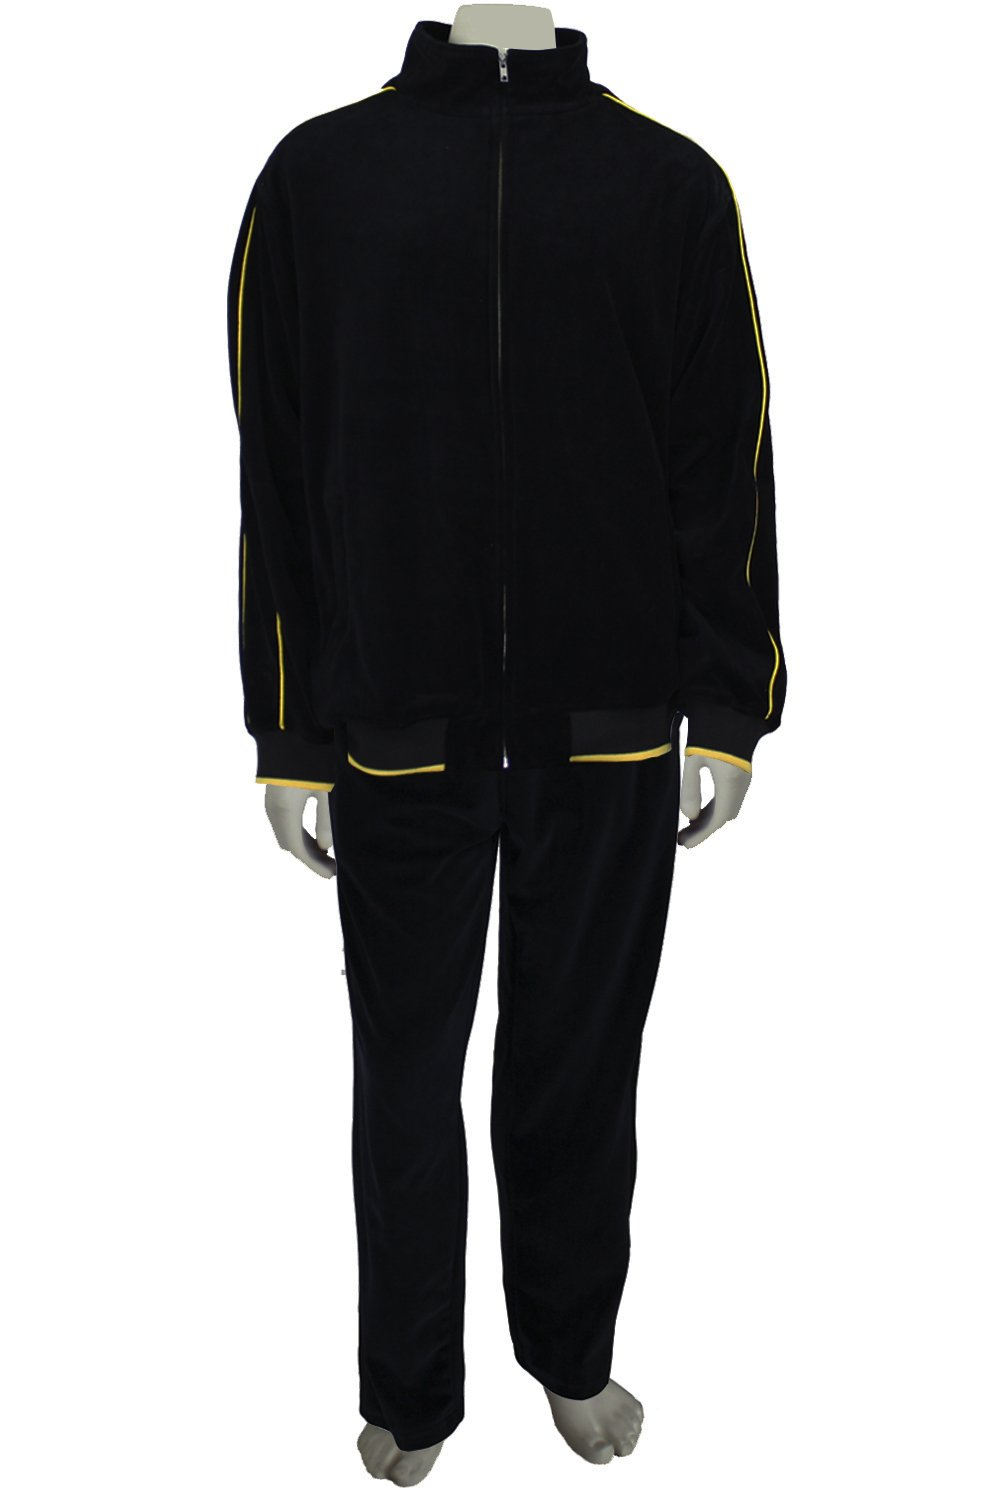 Mens Black Velour Tracksuit with Yellow Piping (Large)